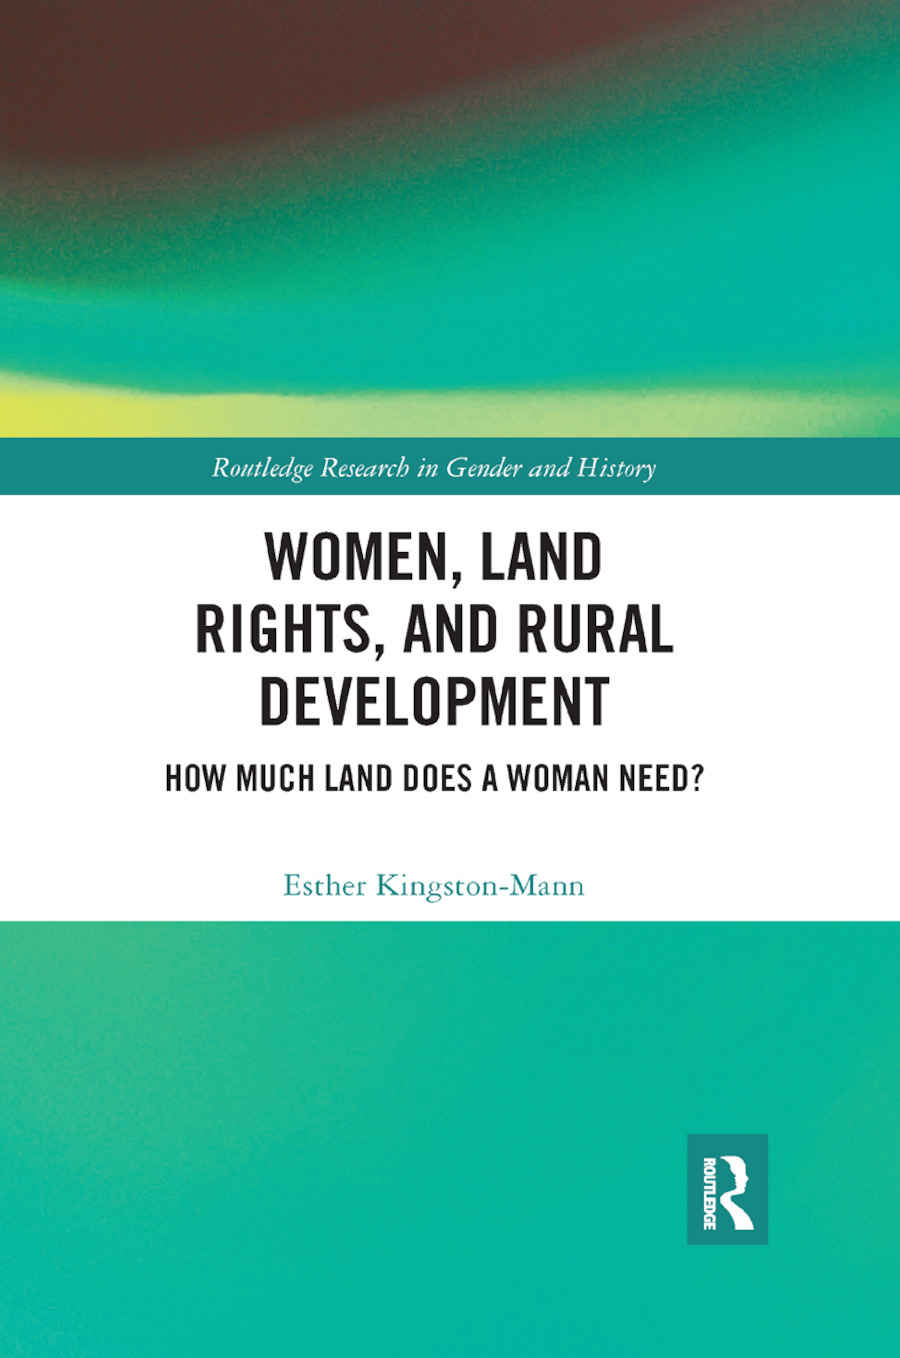 Women, Land Rights and Rural Development: How Much Land Does a Woman Need? book cover